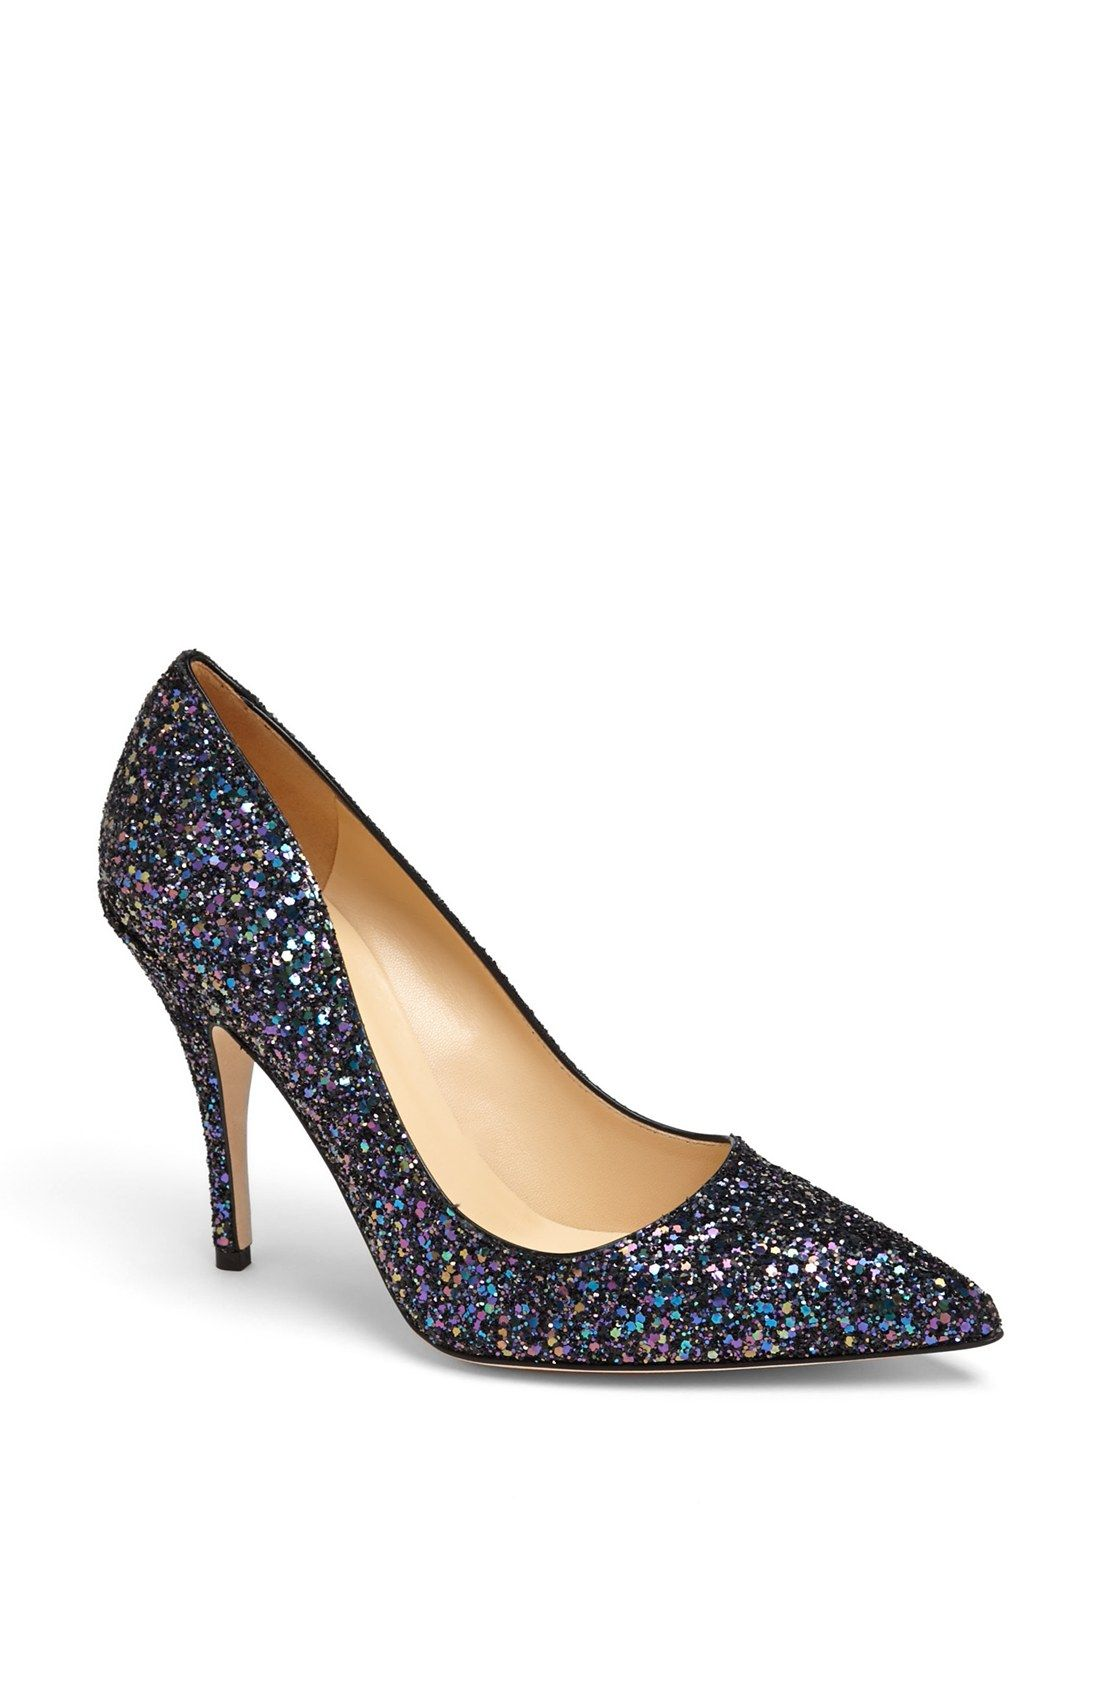 2538f7208558 Obsessed with these multi-color glitter pumps! Will wear them to every  party.